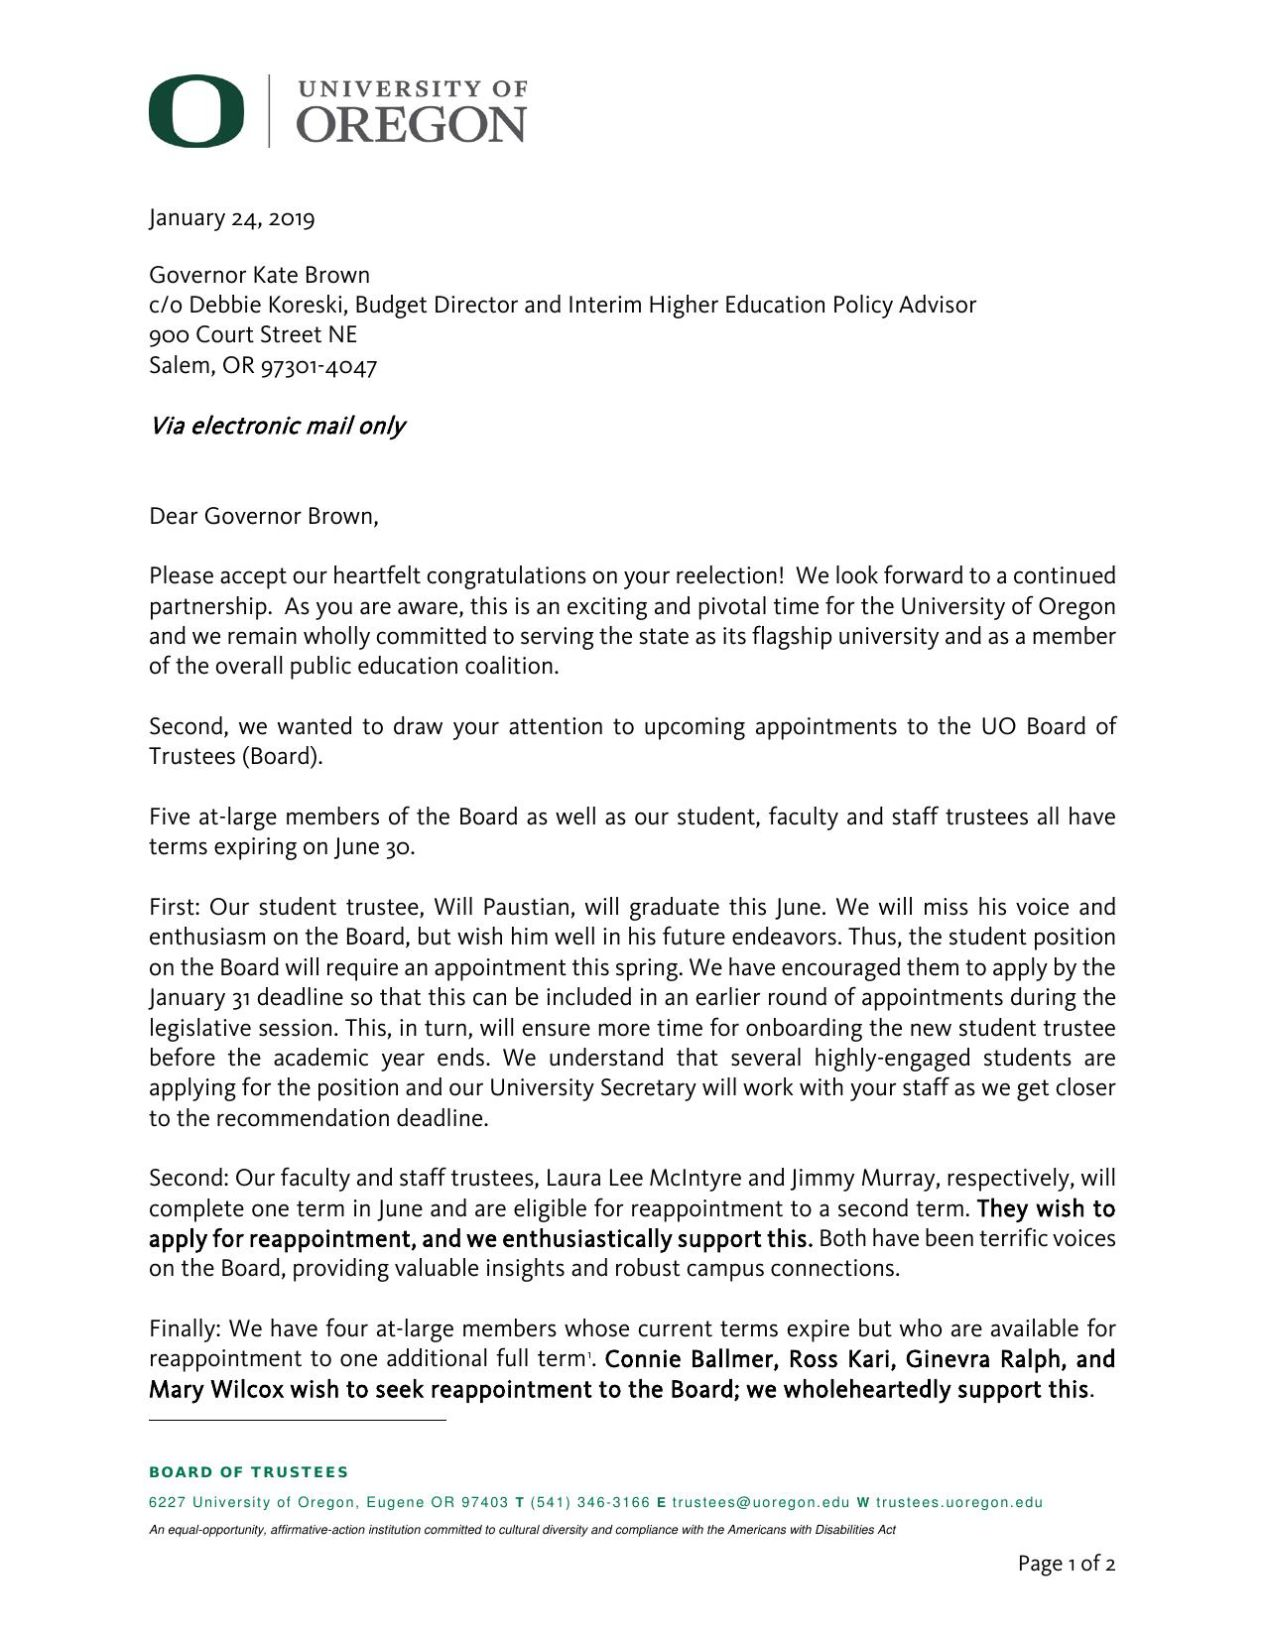 Administration BOT Appointment Letter to Gov. Brown